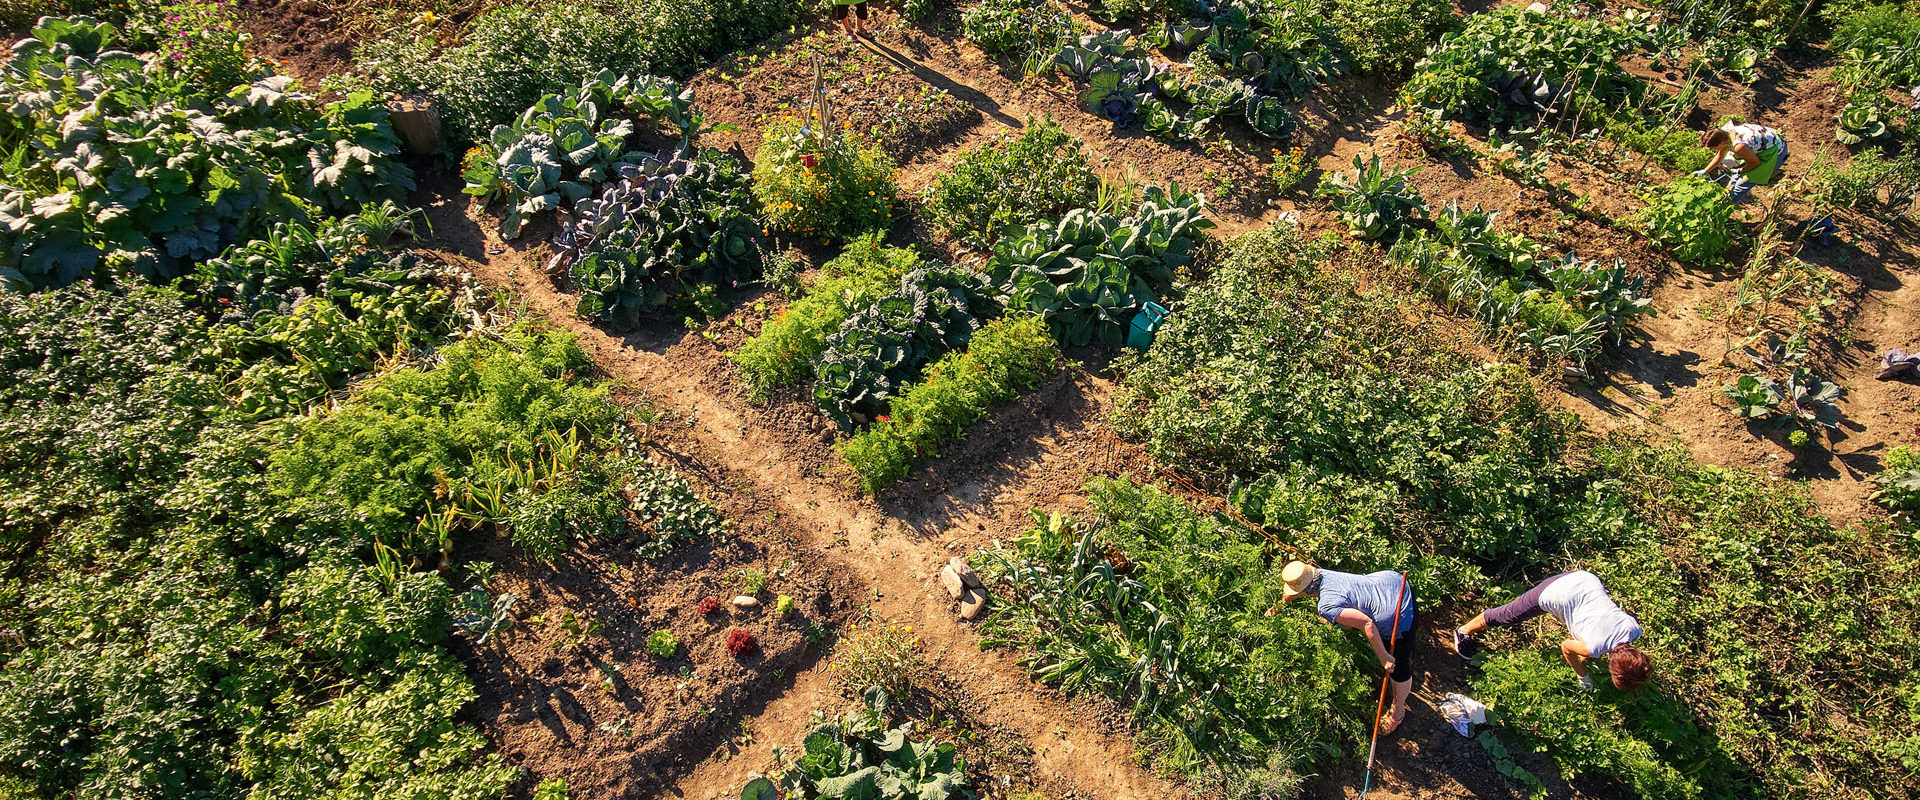 Vegetables: From the garden to the kitchen!